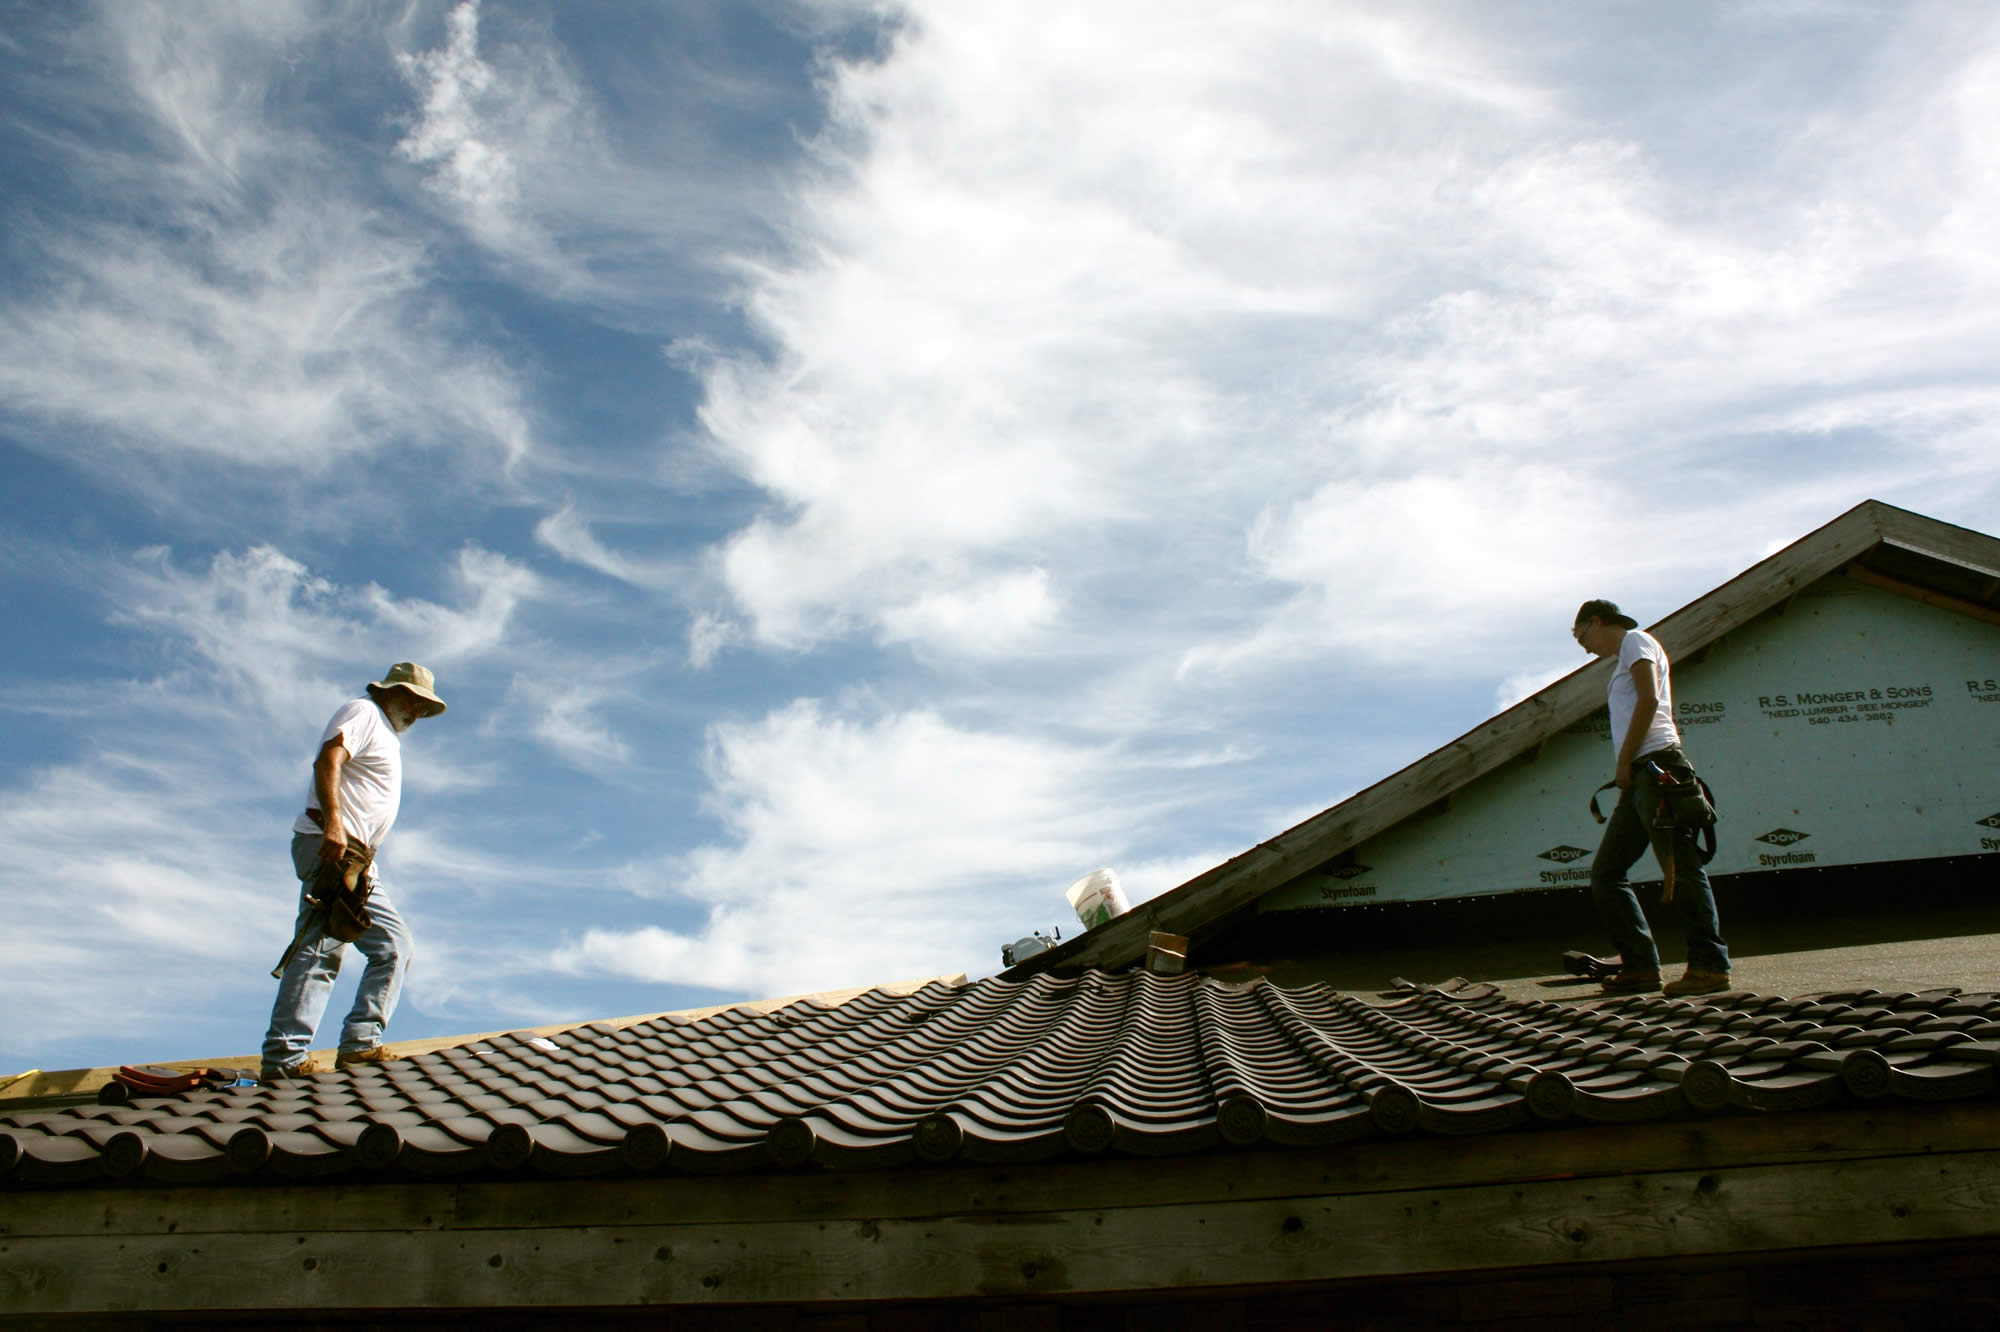 Installing the Japanese roof tiles on the temple